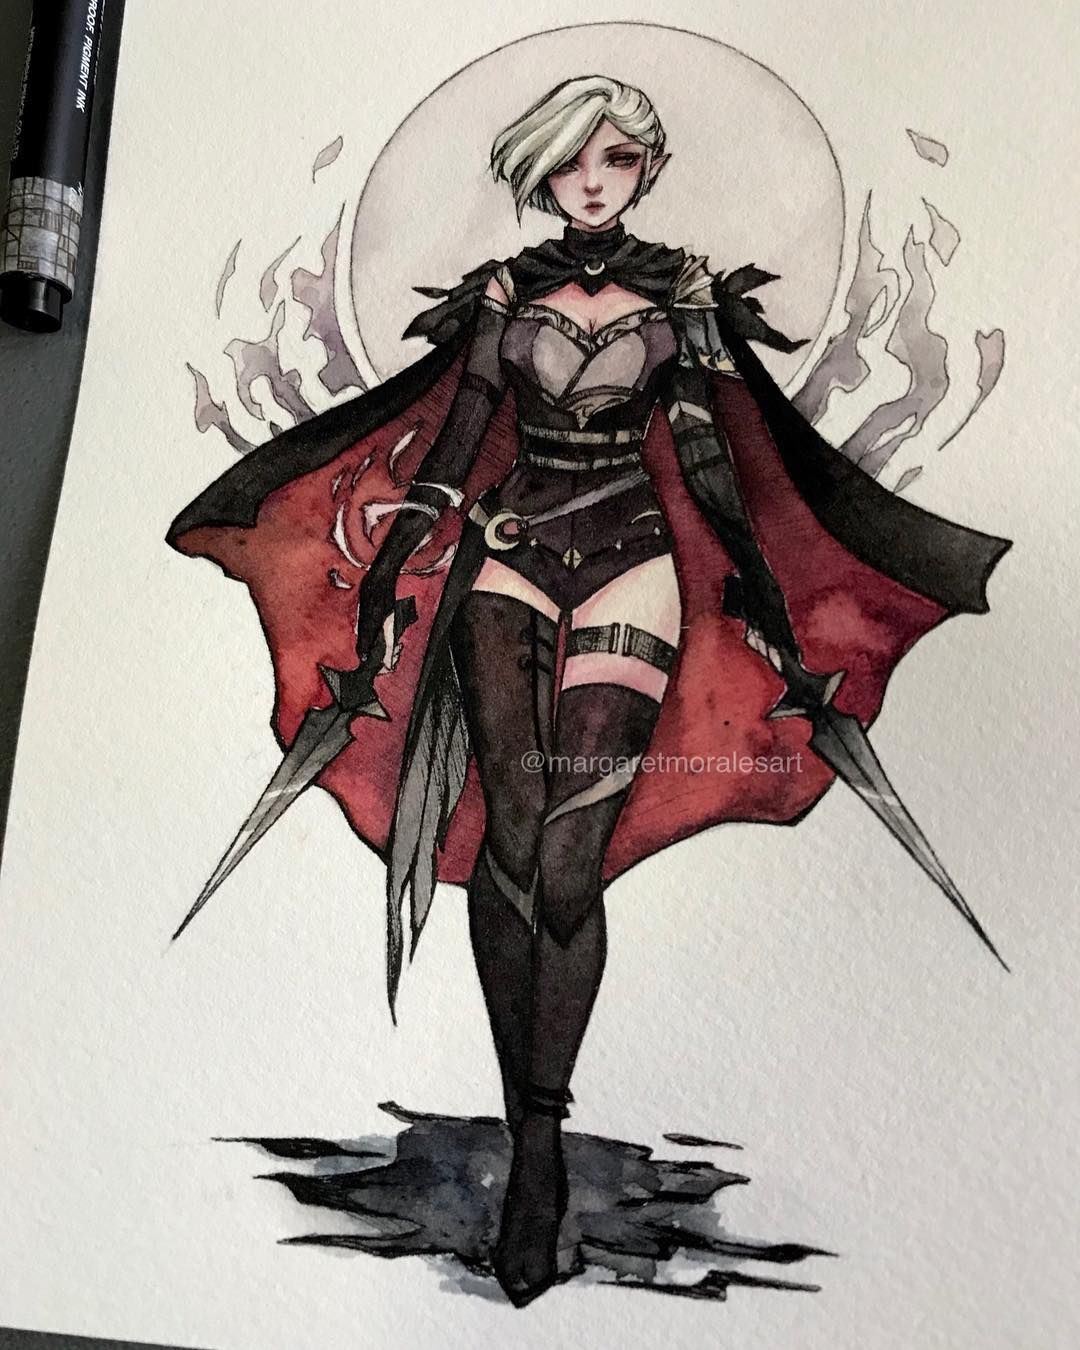 Watercolor Artist Margaret Morales Watercolor Artwoonz Female Assassin Fantasy Drawings Anime Outfits